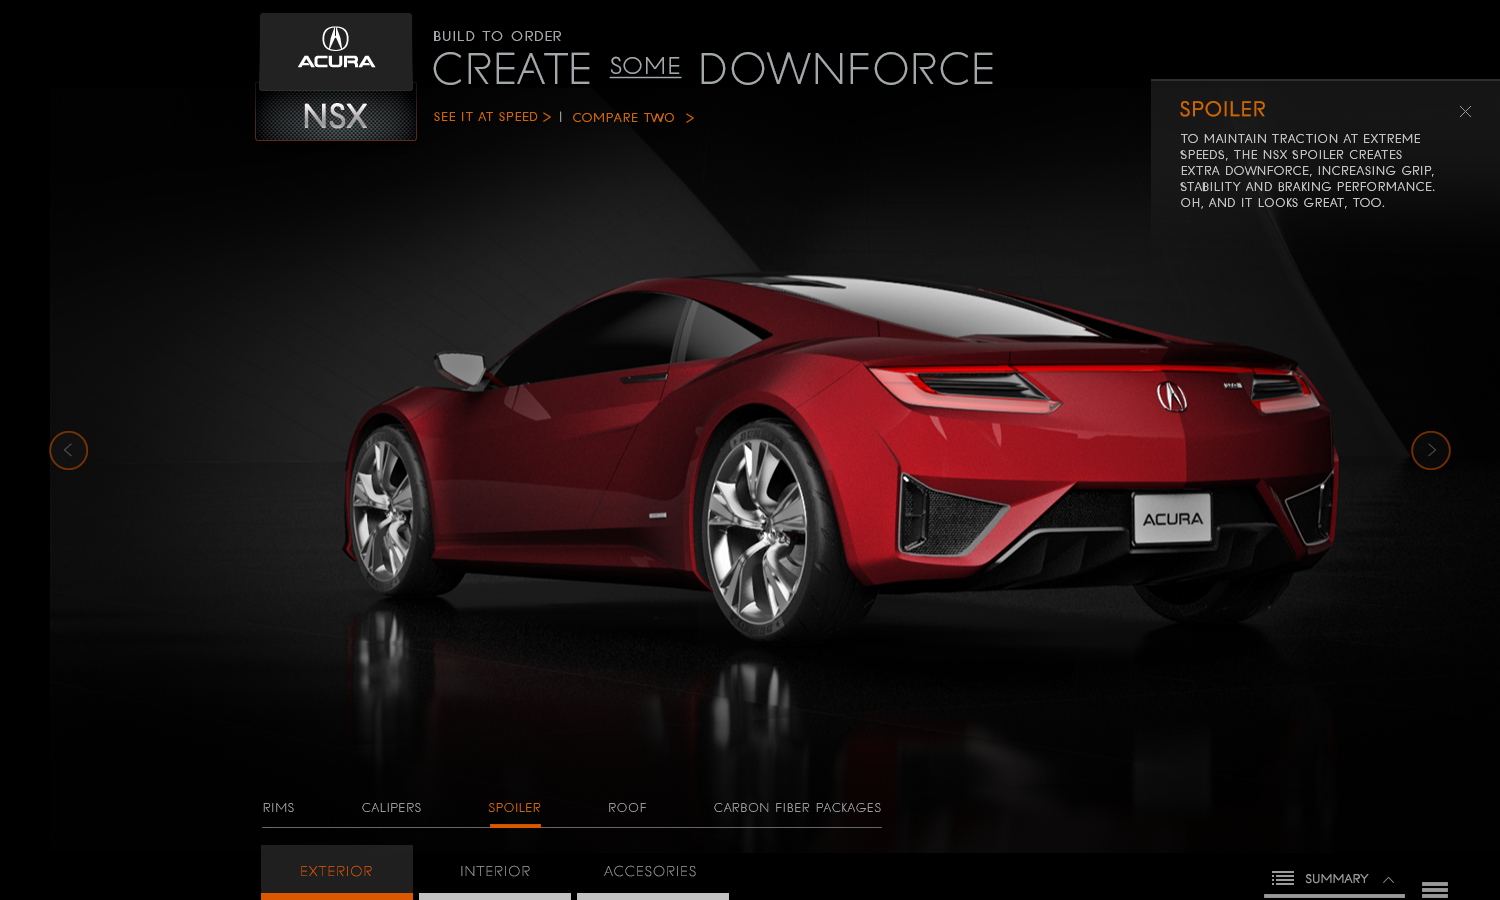 Acura_NSX_BTO_Concept_23.png